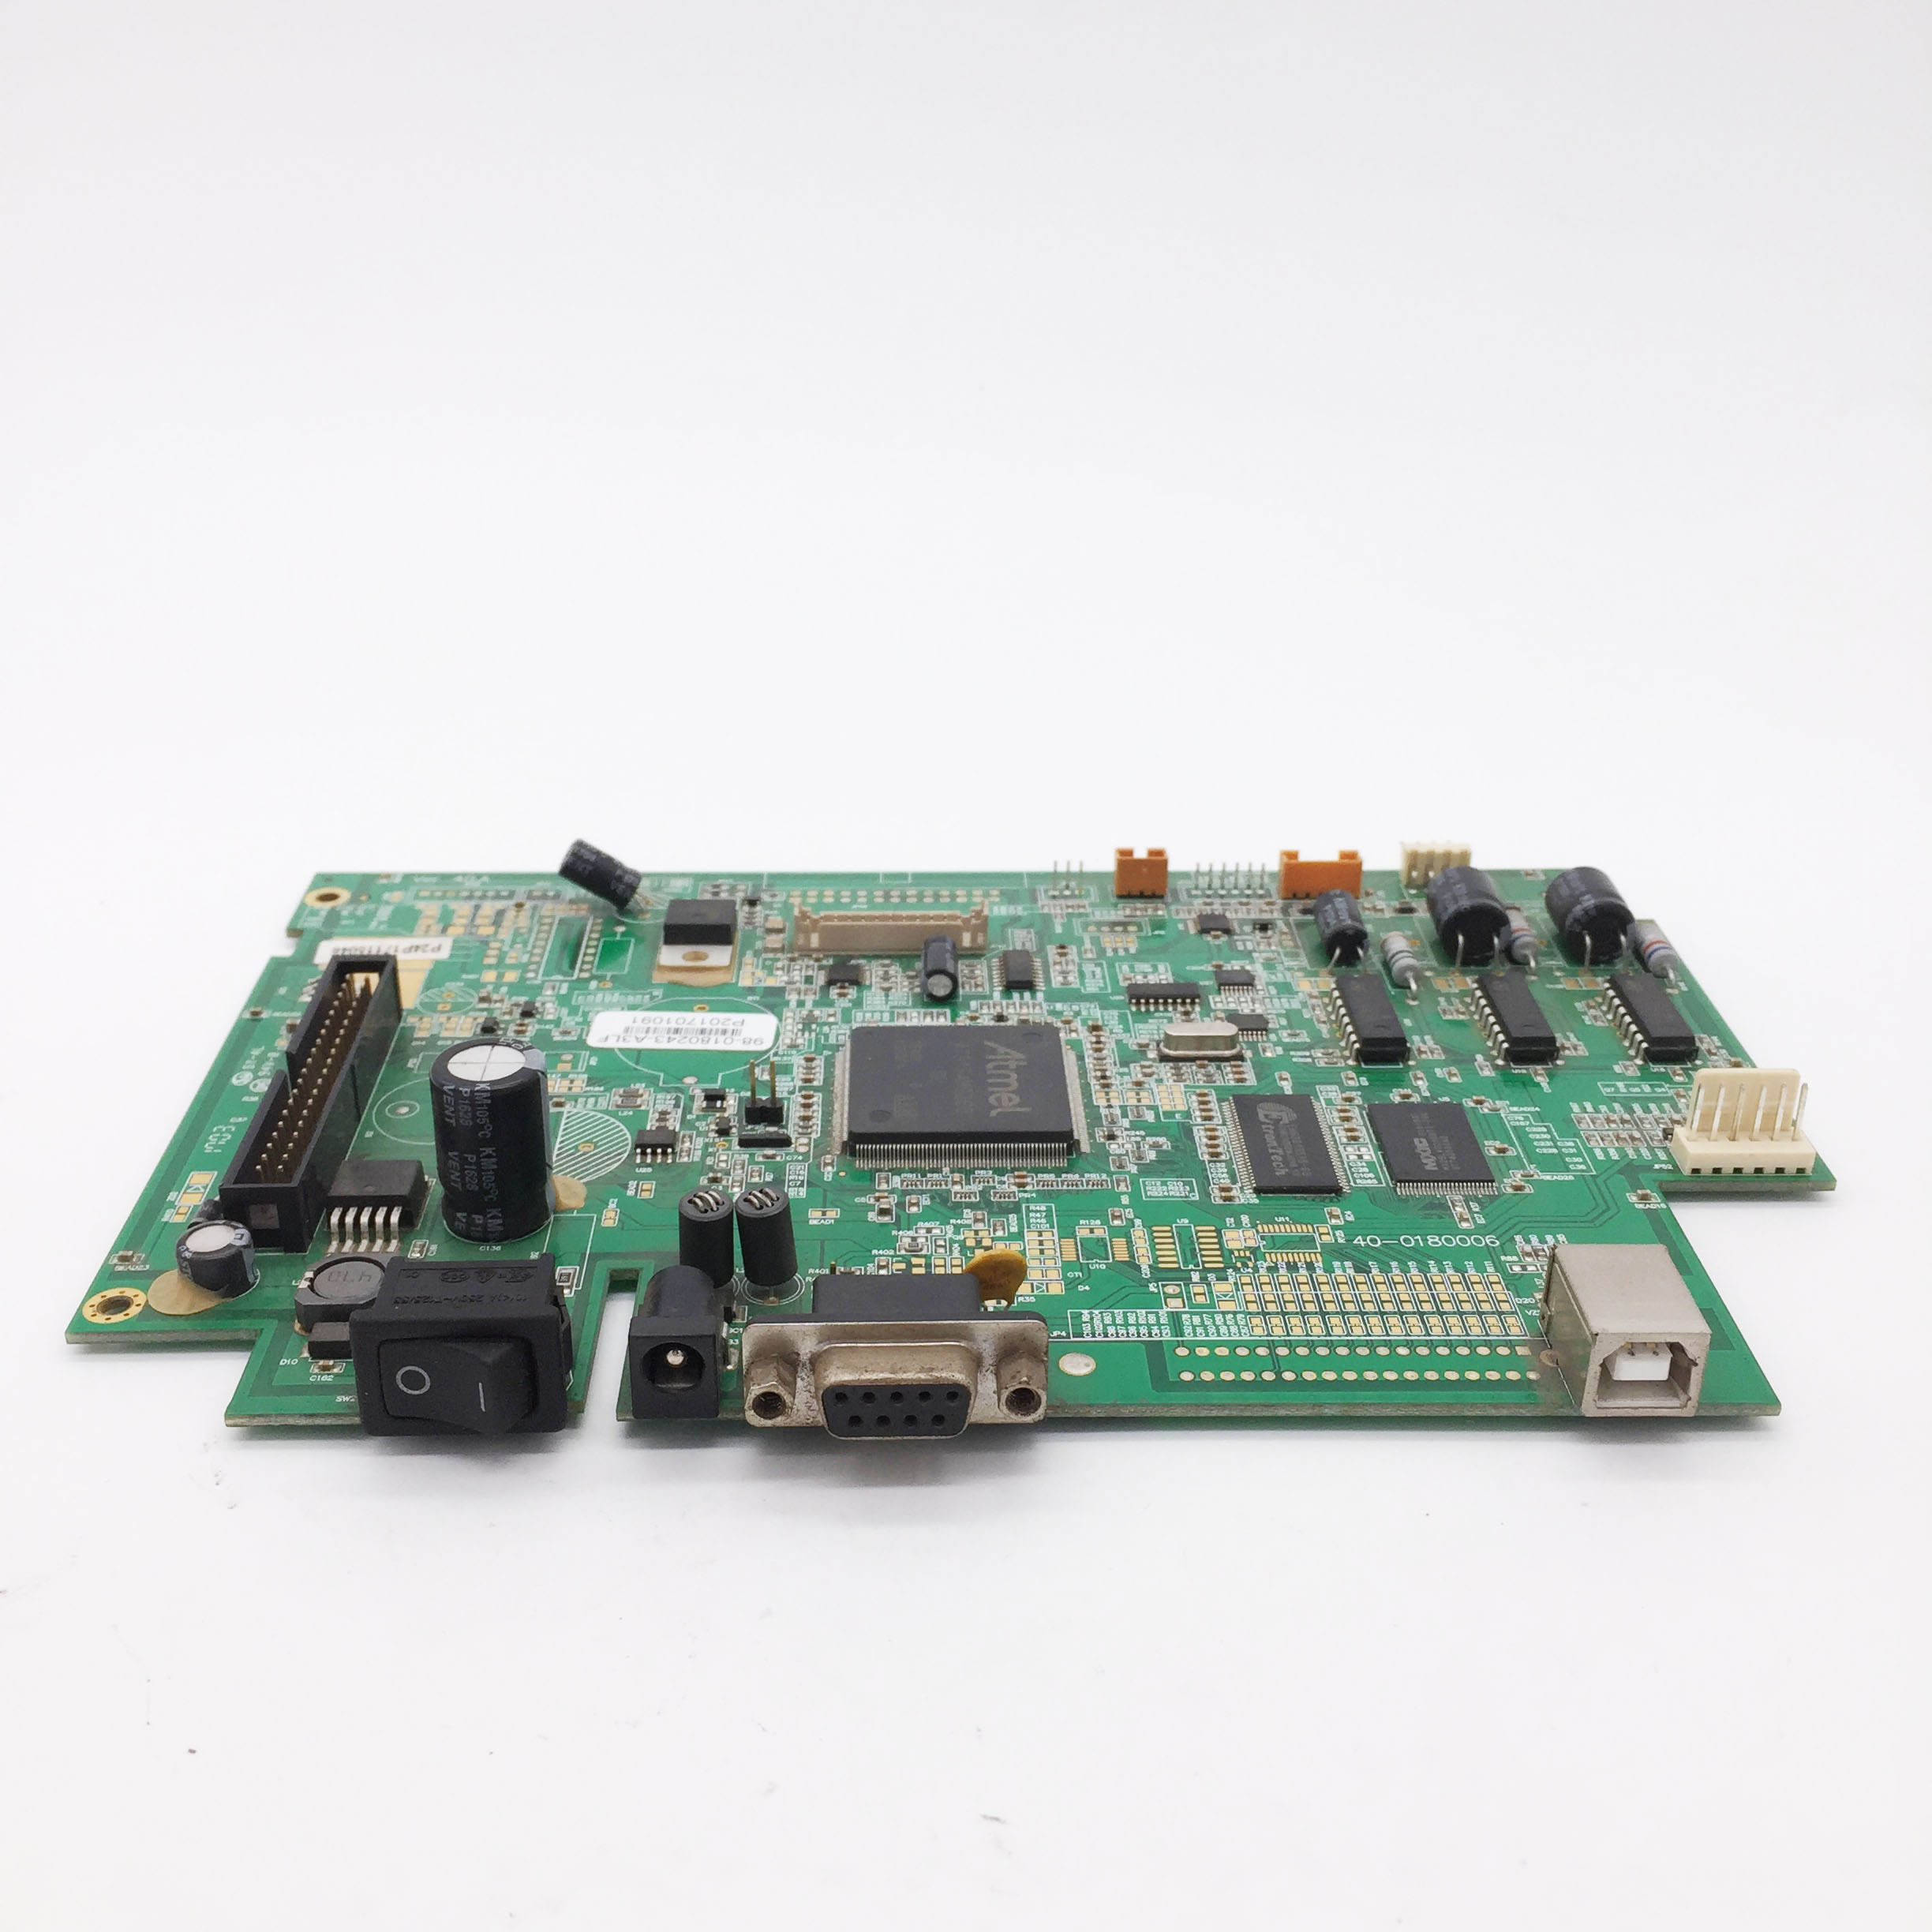 Main board mainboard for TSC TTP-244PLUS motherboard barcode printer Ver 40.A Ver 30.0